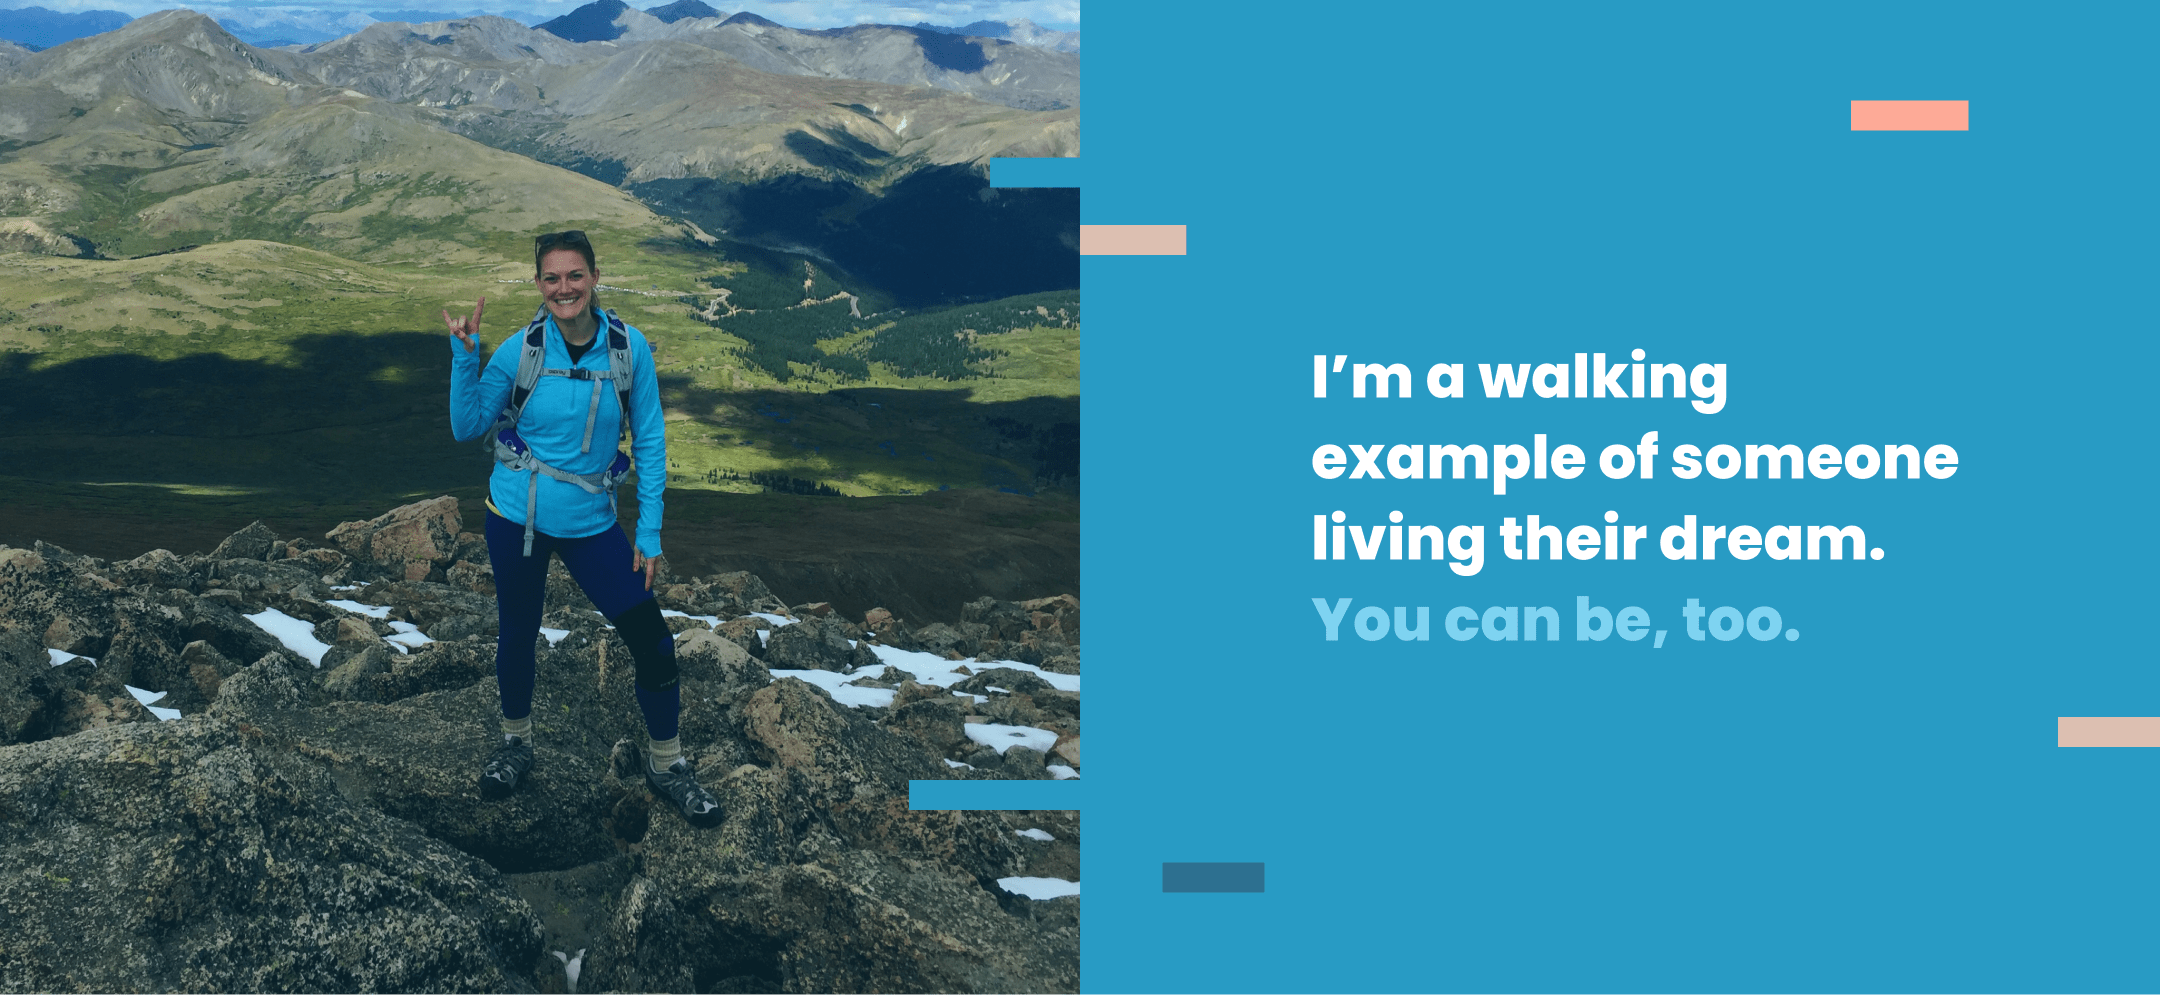 """A woman in hiking clothes stands at the top of a mountain in blue top smiling at the camera with a quote in the image """"I'm a walking example of someone living their dream. You can be too."""""""